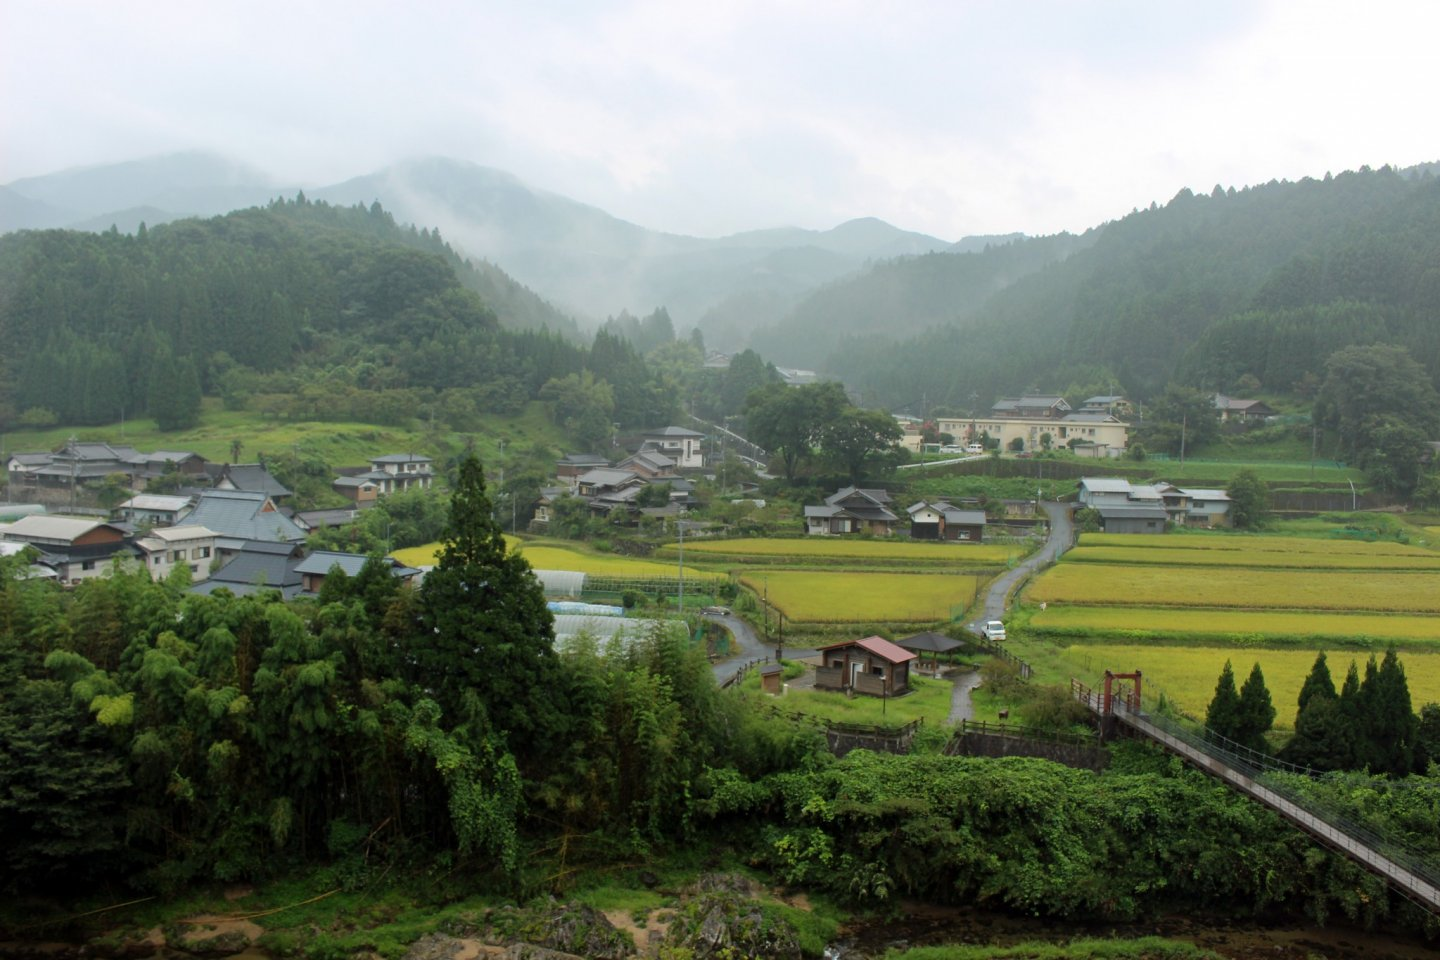 The golden rice paddies and misty mountains of Soni-mura in the rain